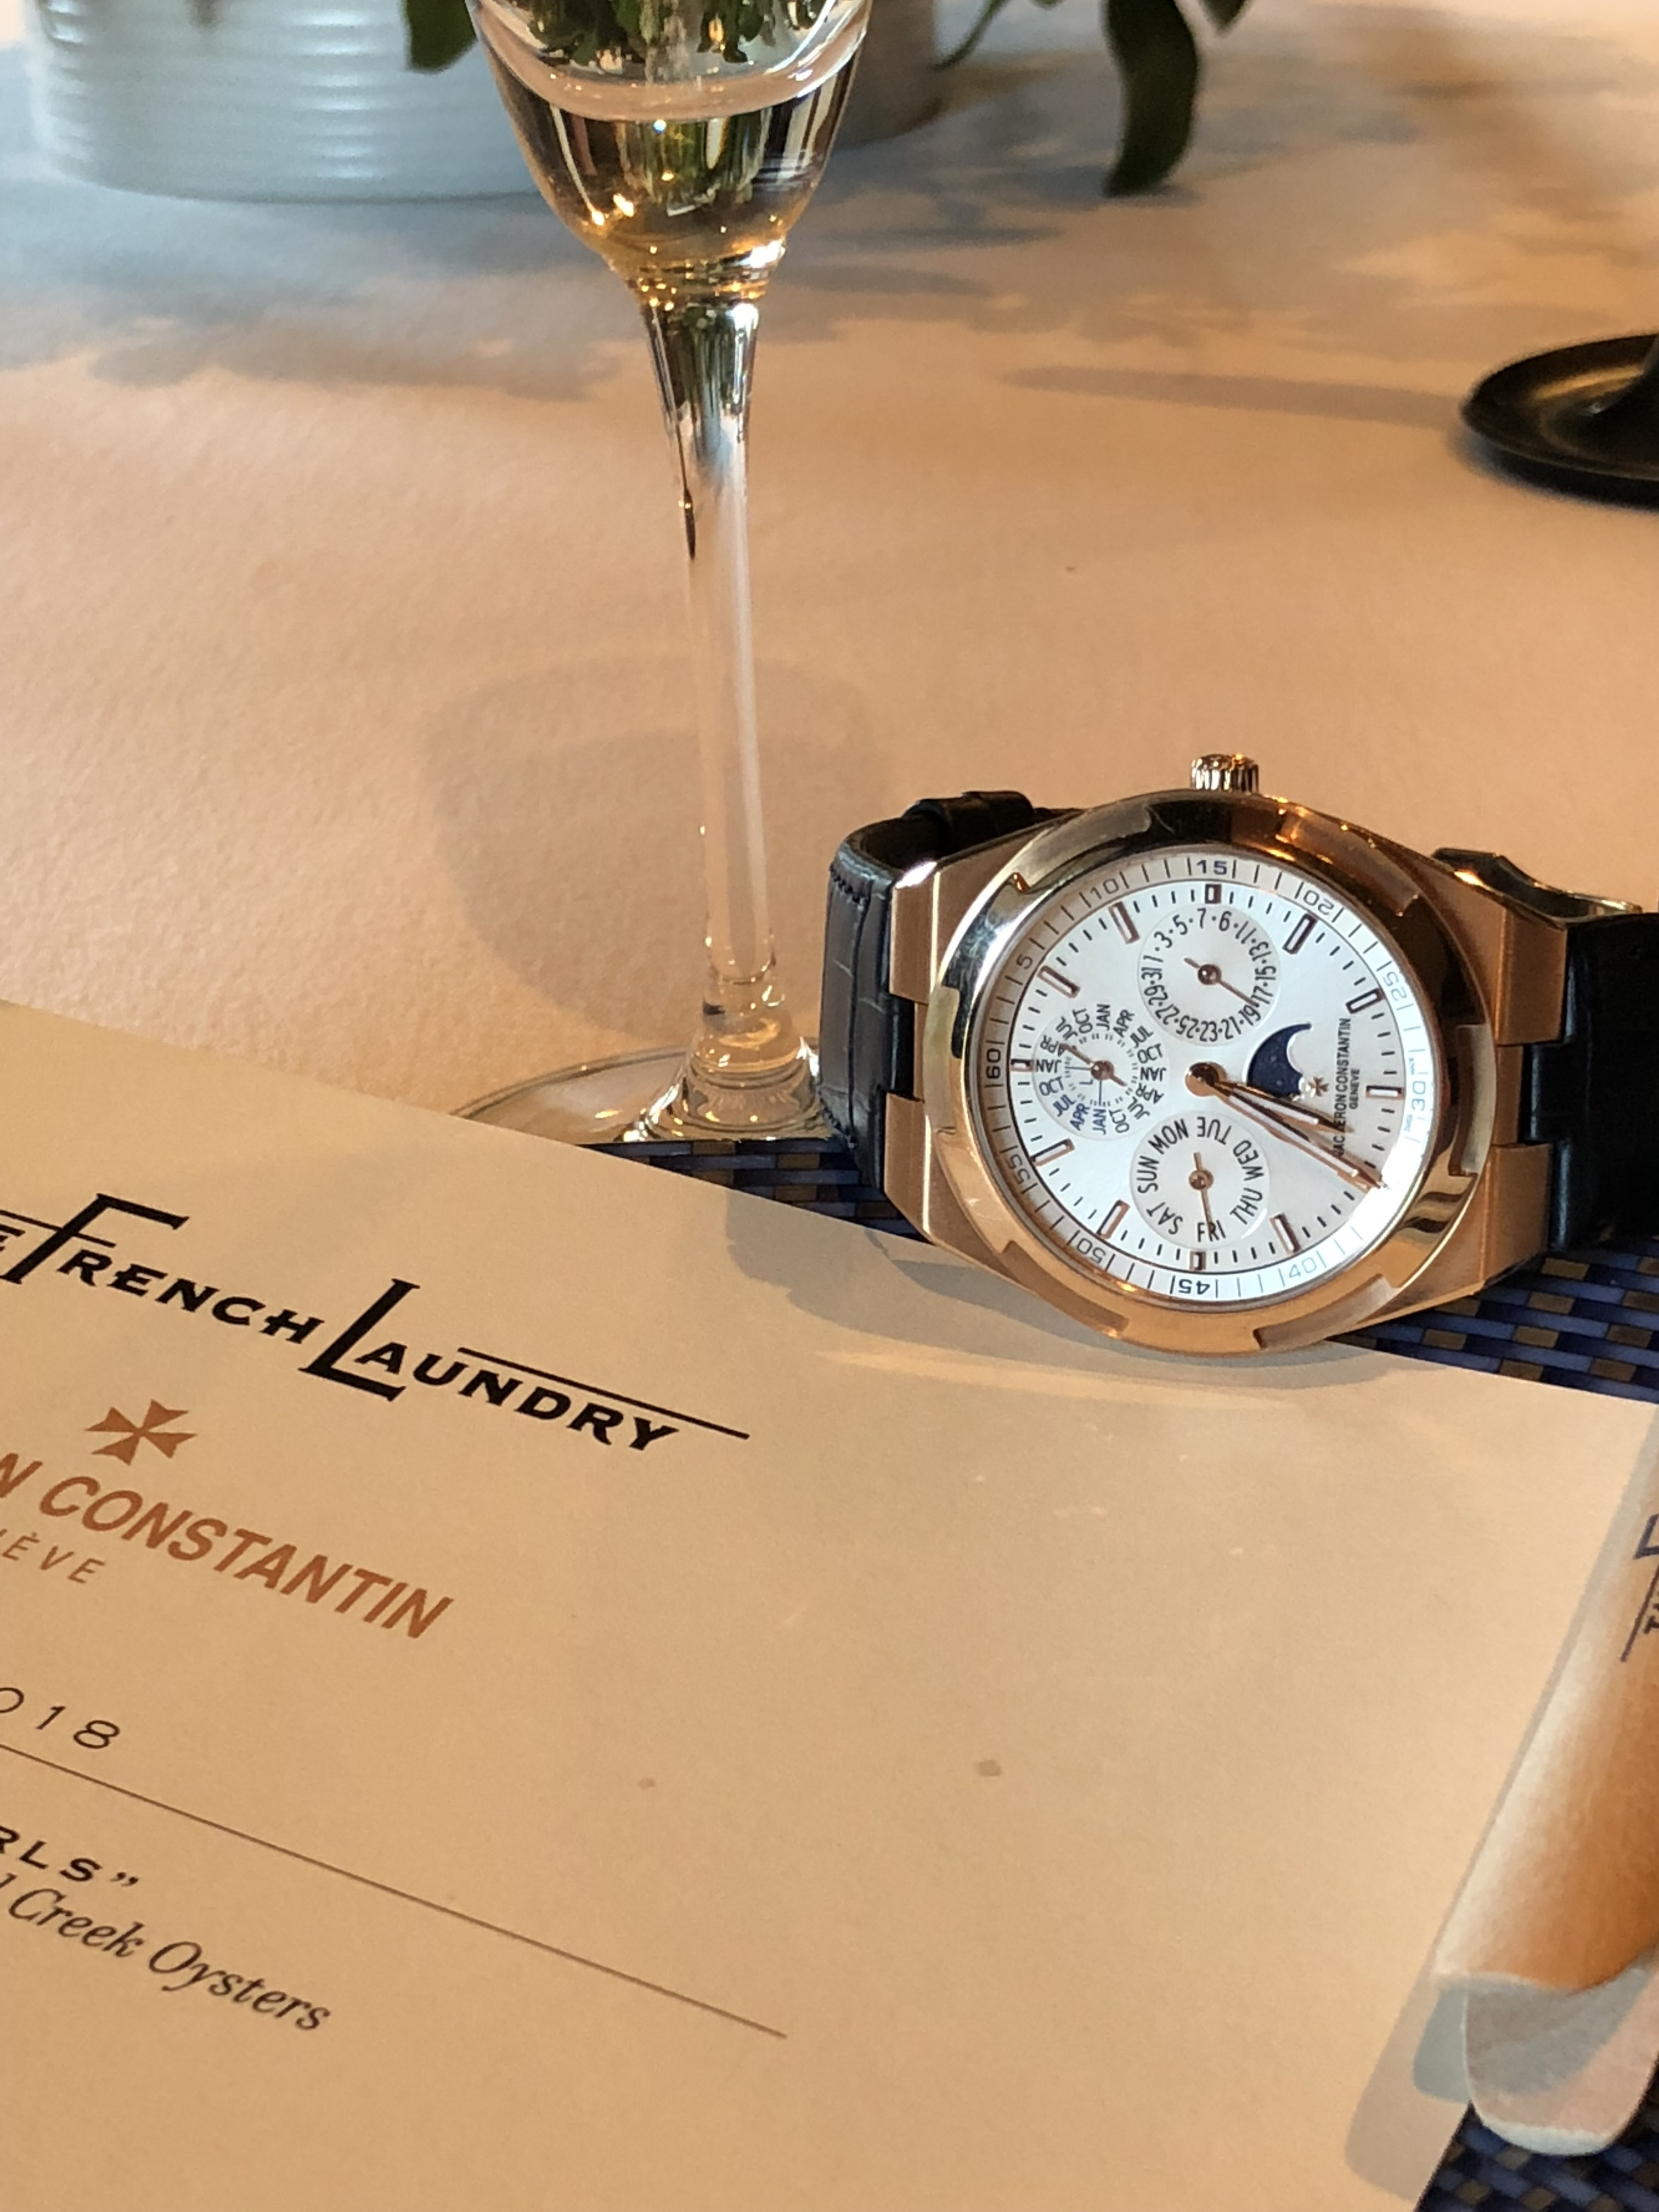 Vacheron Constantin Overseas Ultra-Thin Perpetual Calendar watch ... at The French Laundry in Napa.